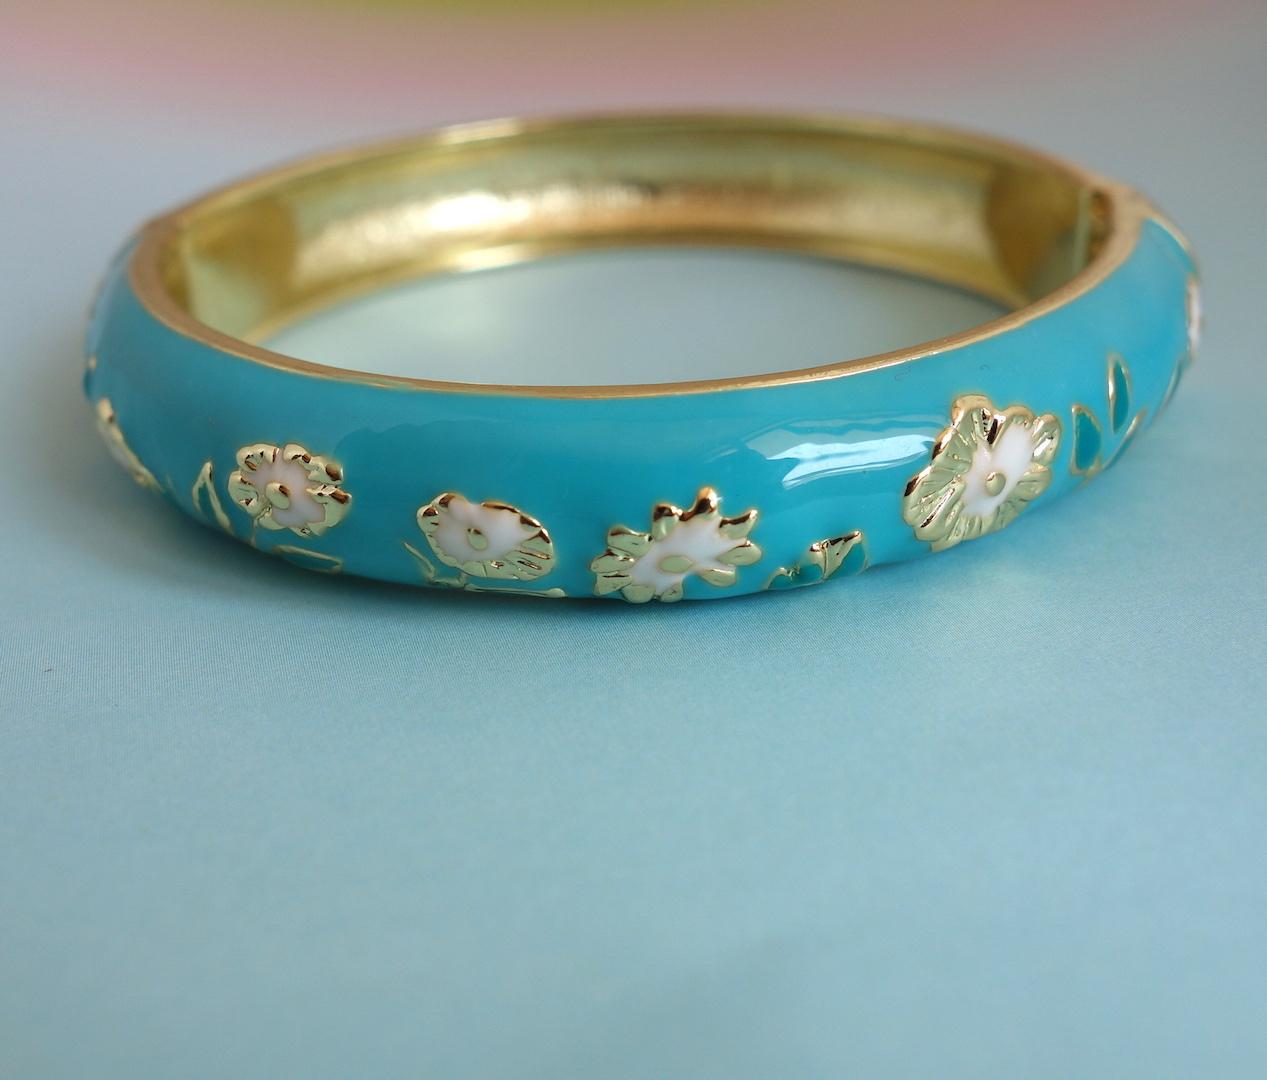 bracelet_in_the_mood_for_love_bleu_turquoise_emaille_fleuri_or